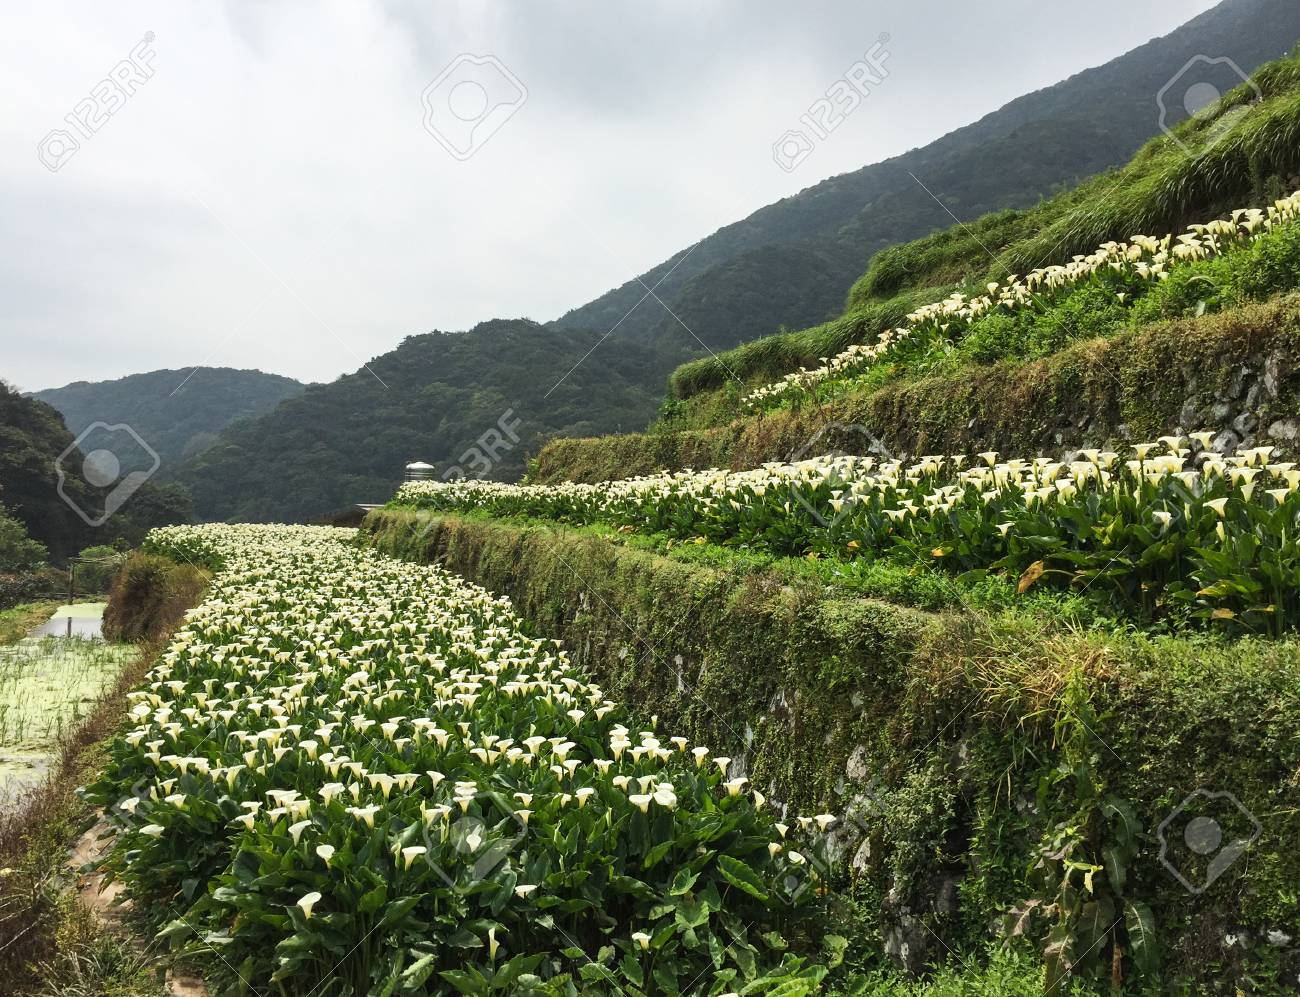 Zantedeschia aethiopica known as calla lily and arum lily flower stock photo zantedeschia aethiopica known as calla lily and arum lily flower fields on the hill at spring time izmirmasajfo